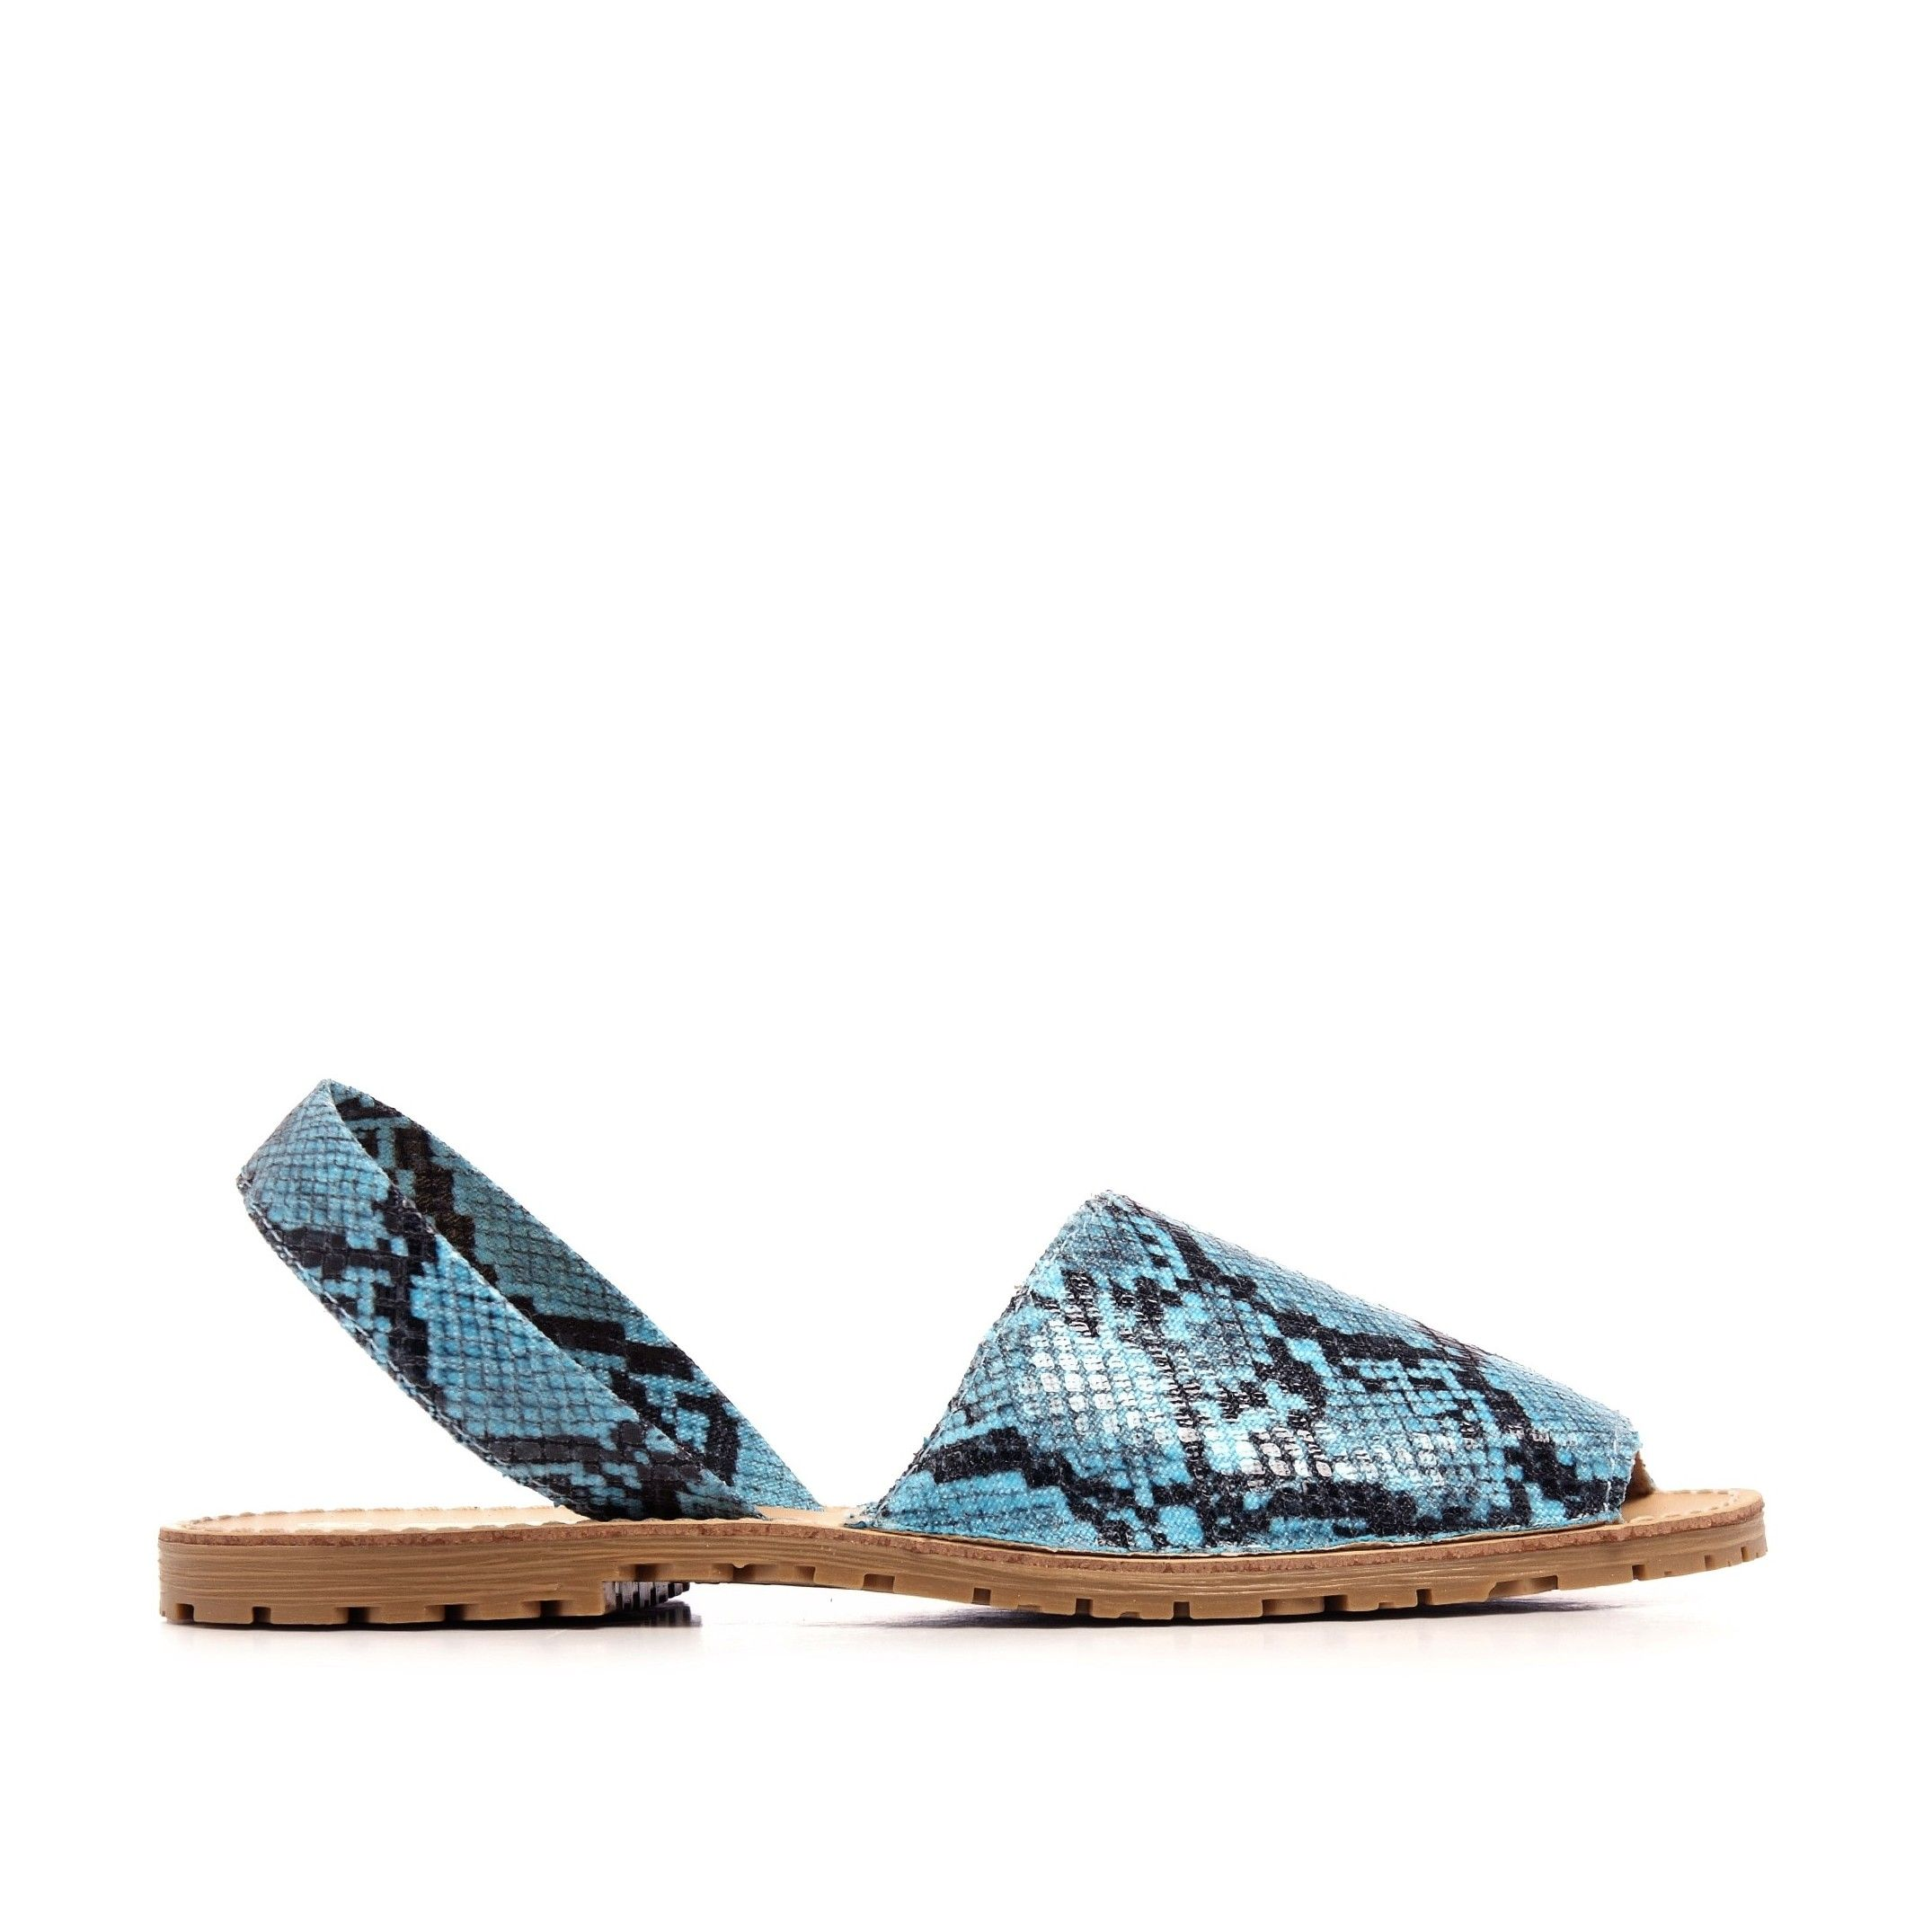 Classic Leather Sandal Menorquina for Women Blue Fluor snake. Maria Barcelo